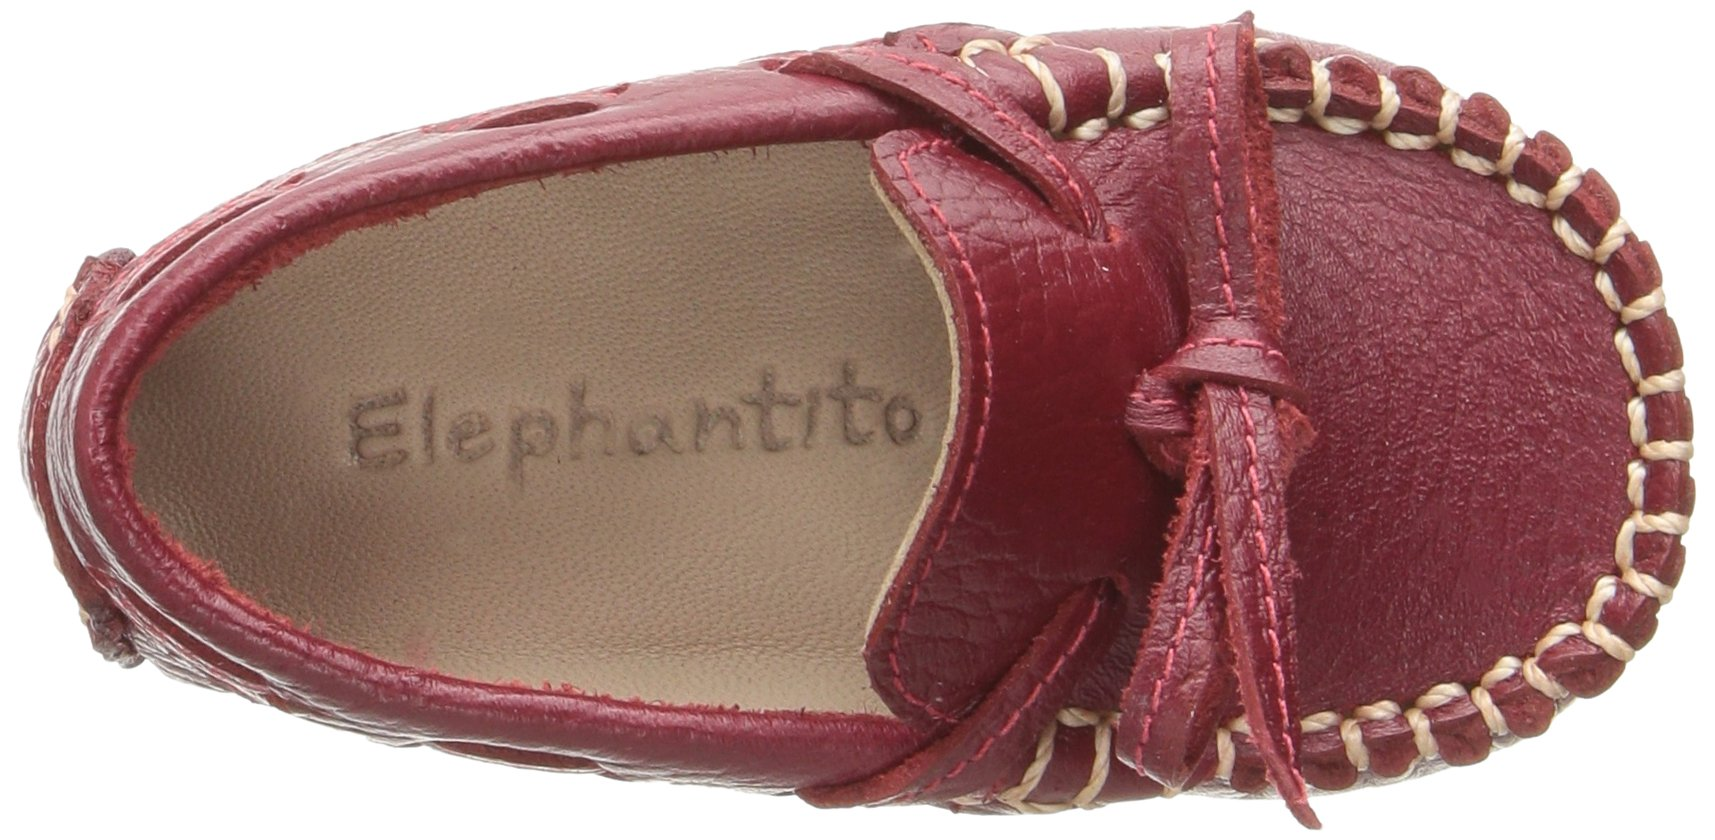 Elephantito Boys' Driver Loafer-K, Racing Red 10 M US Toddler by Elephantito (Image #8)